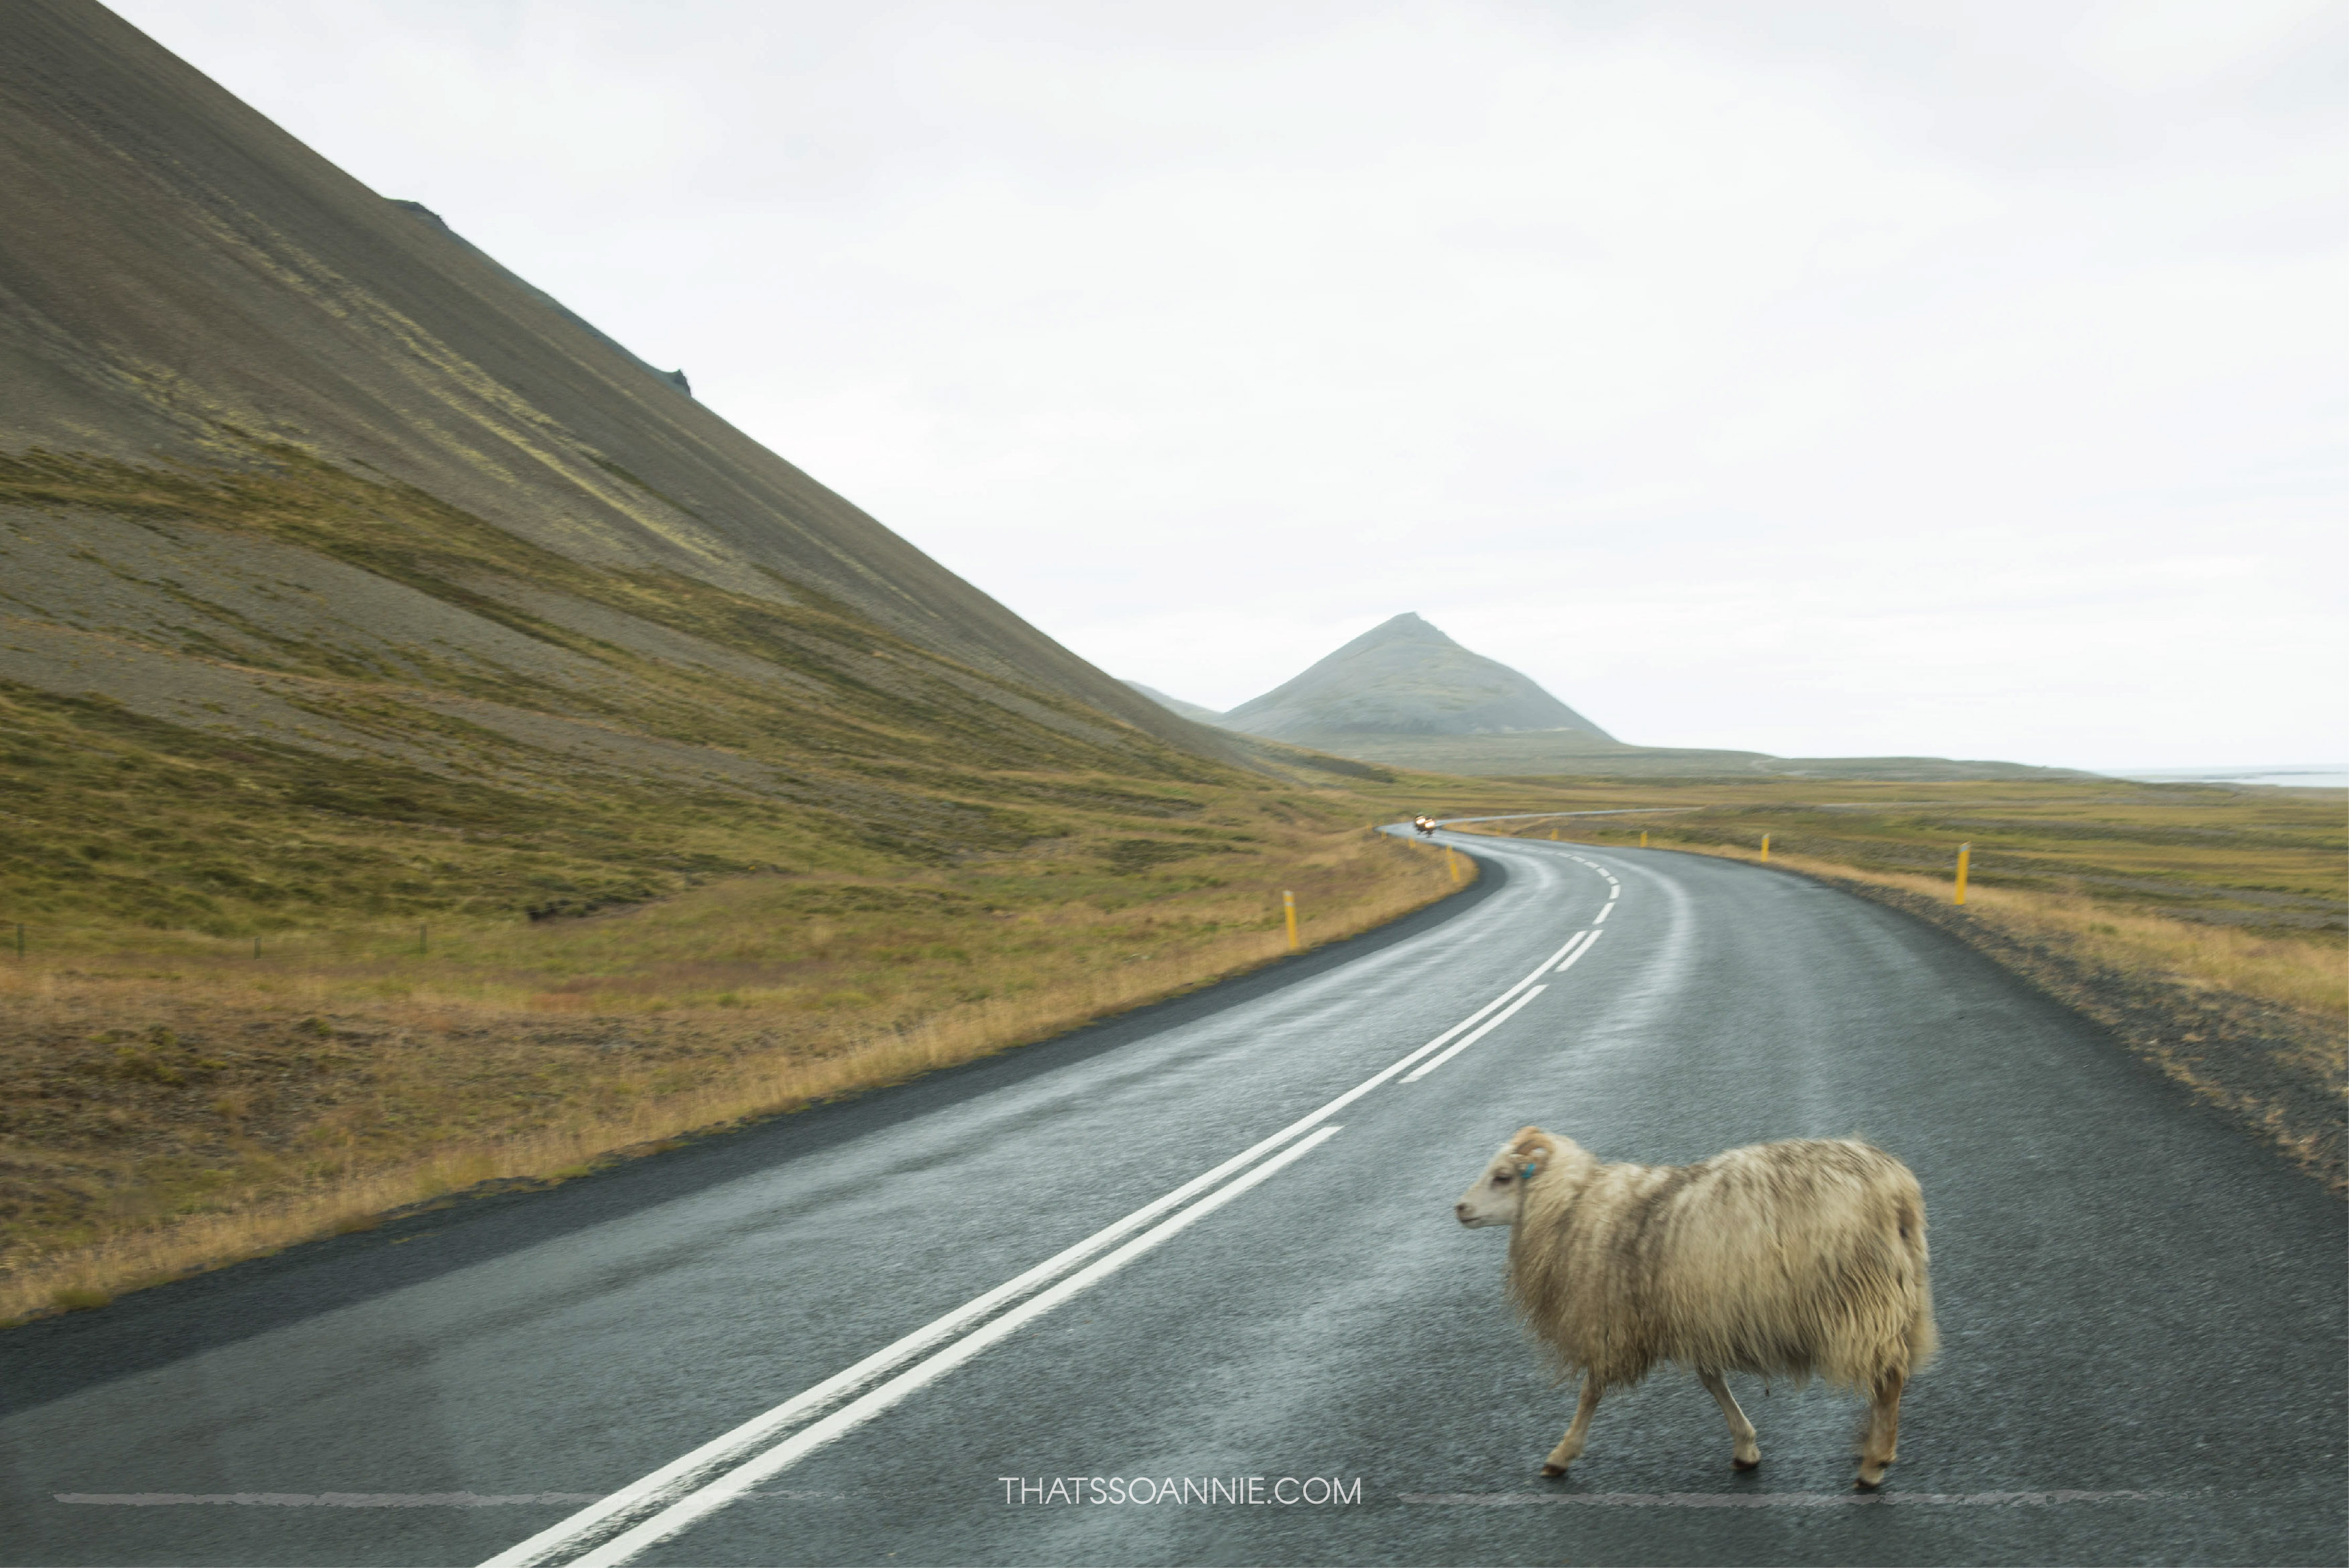 The first of thesuicidal sheep of Iceland! : 